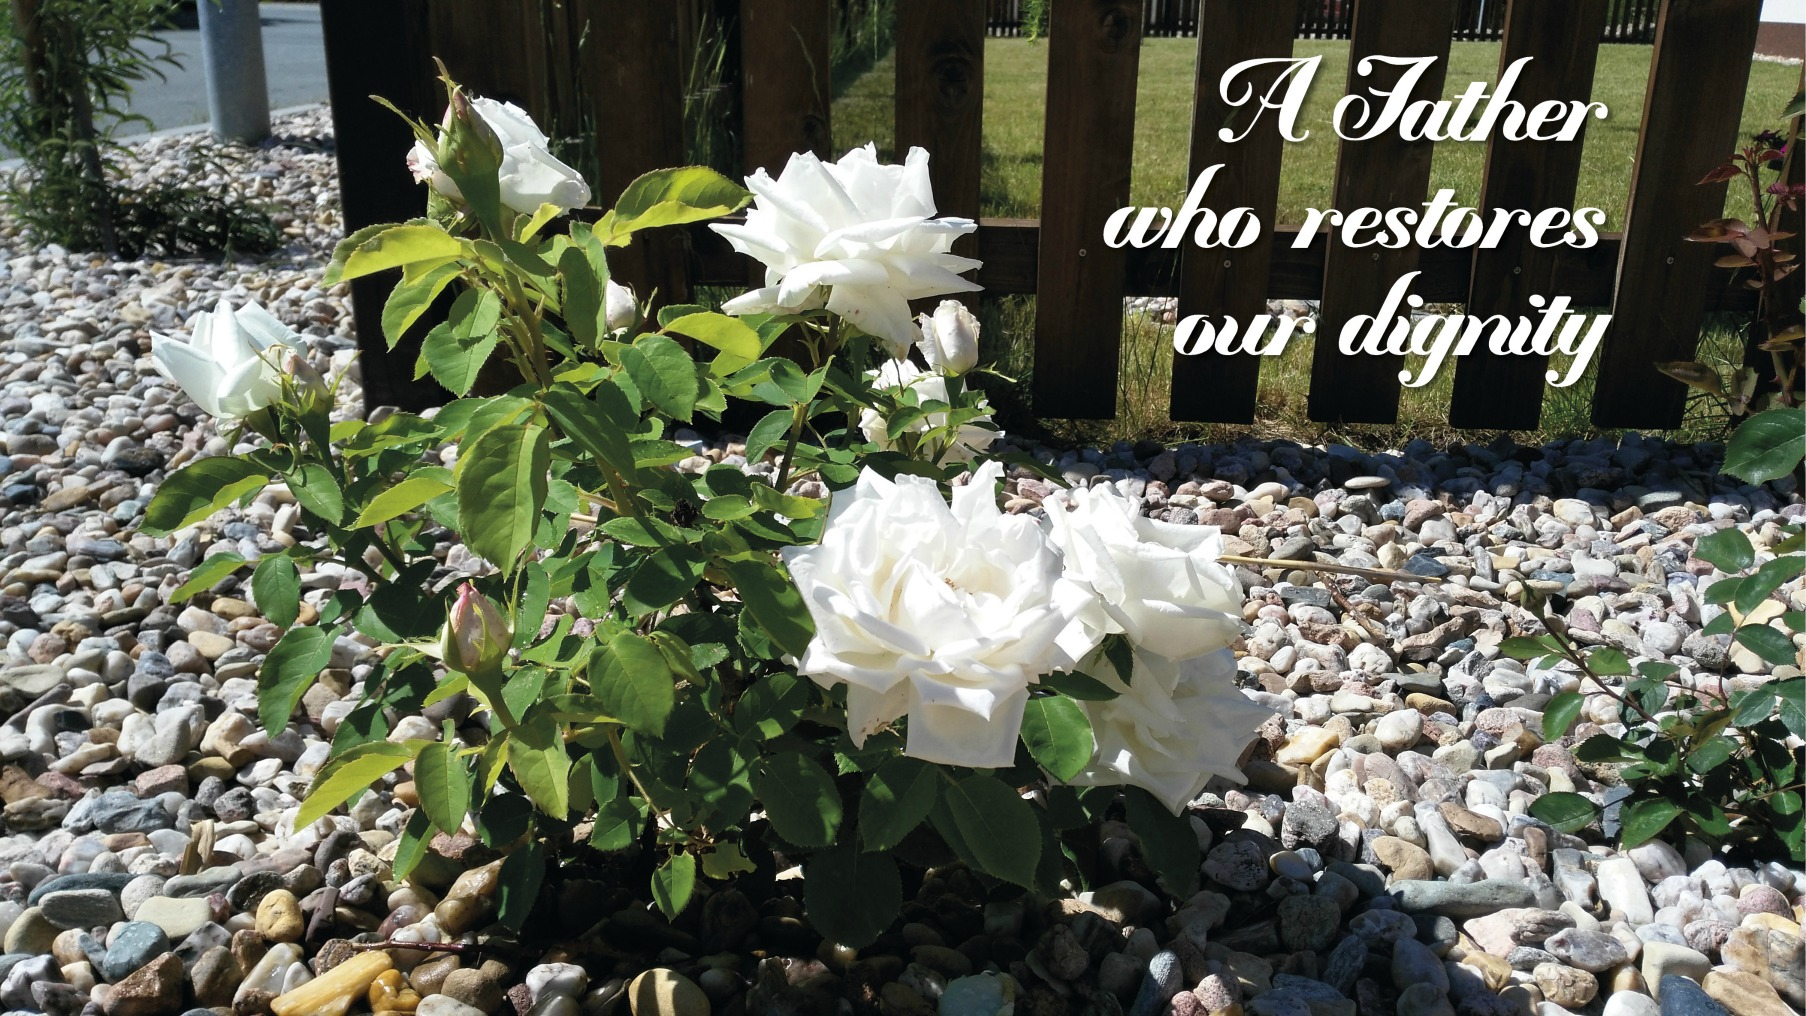 A Father who restores our dignity